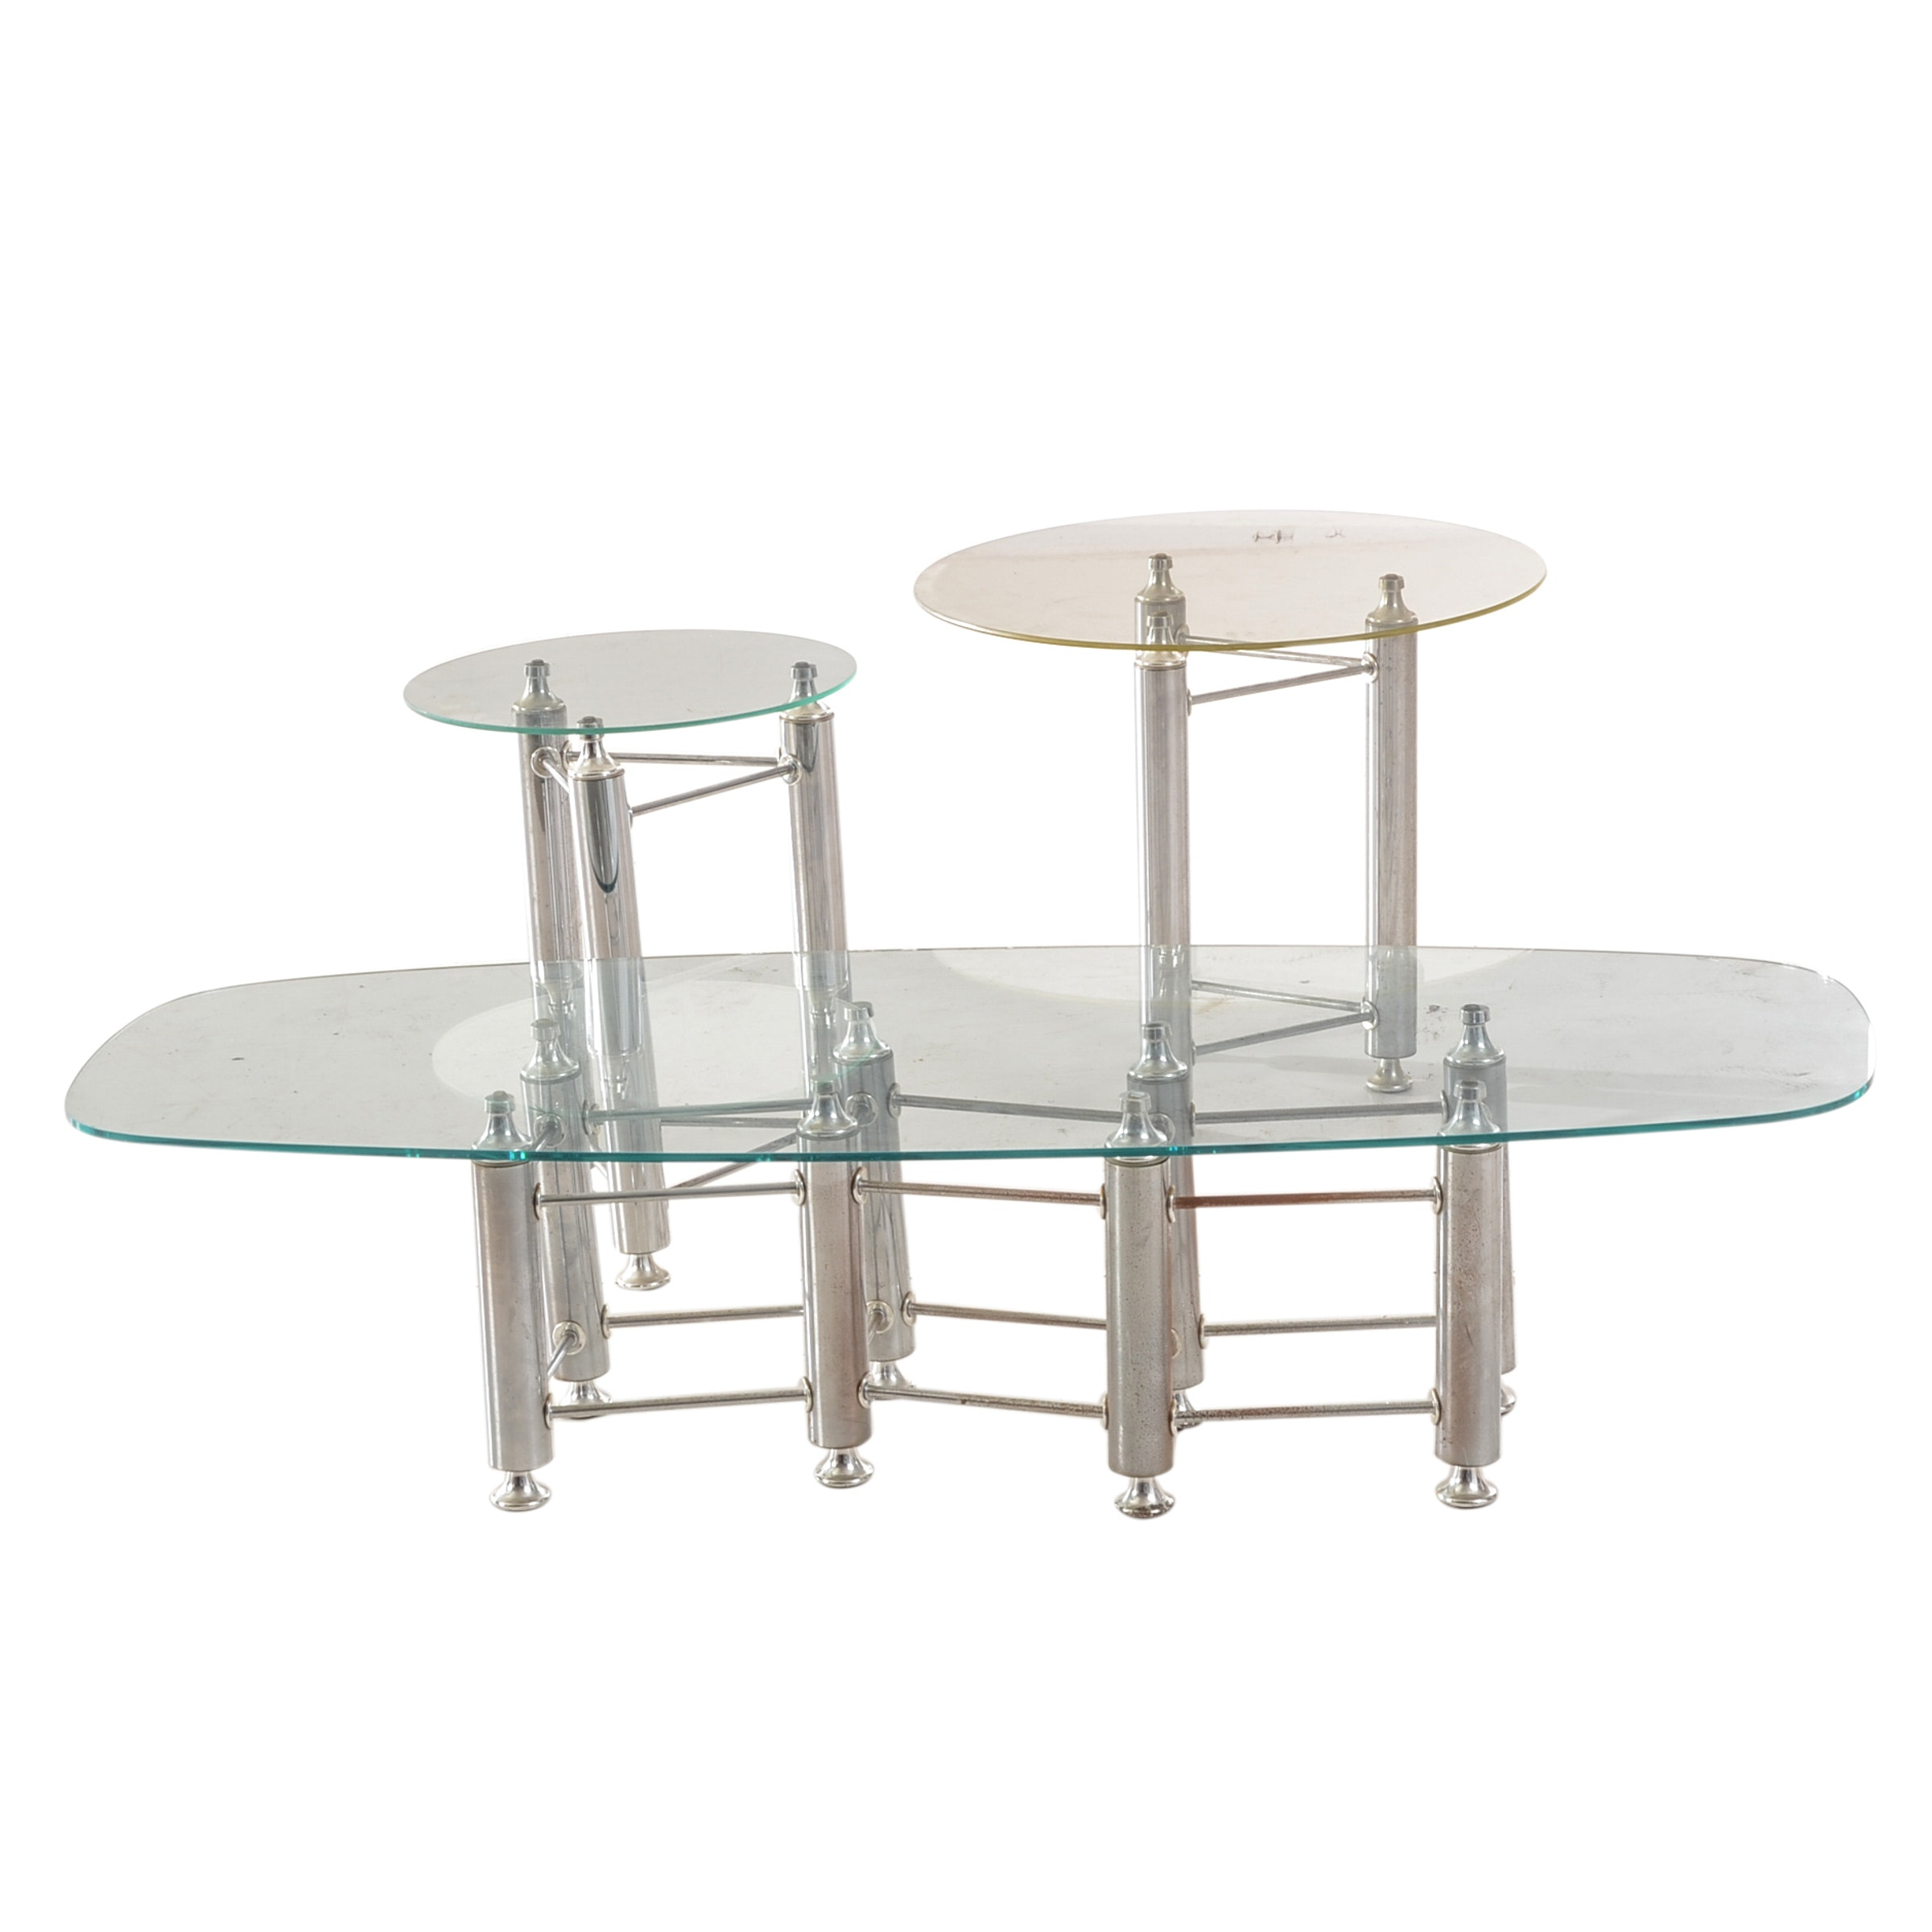 Three Piece Chrome and Glass Table Set